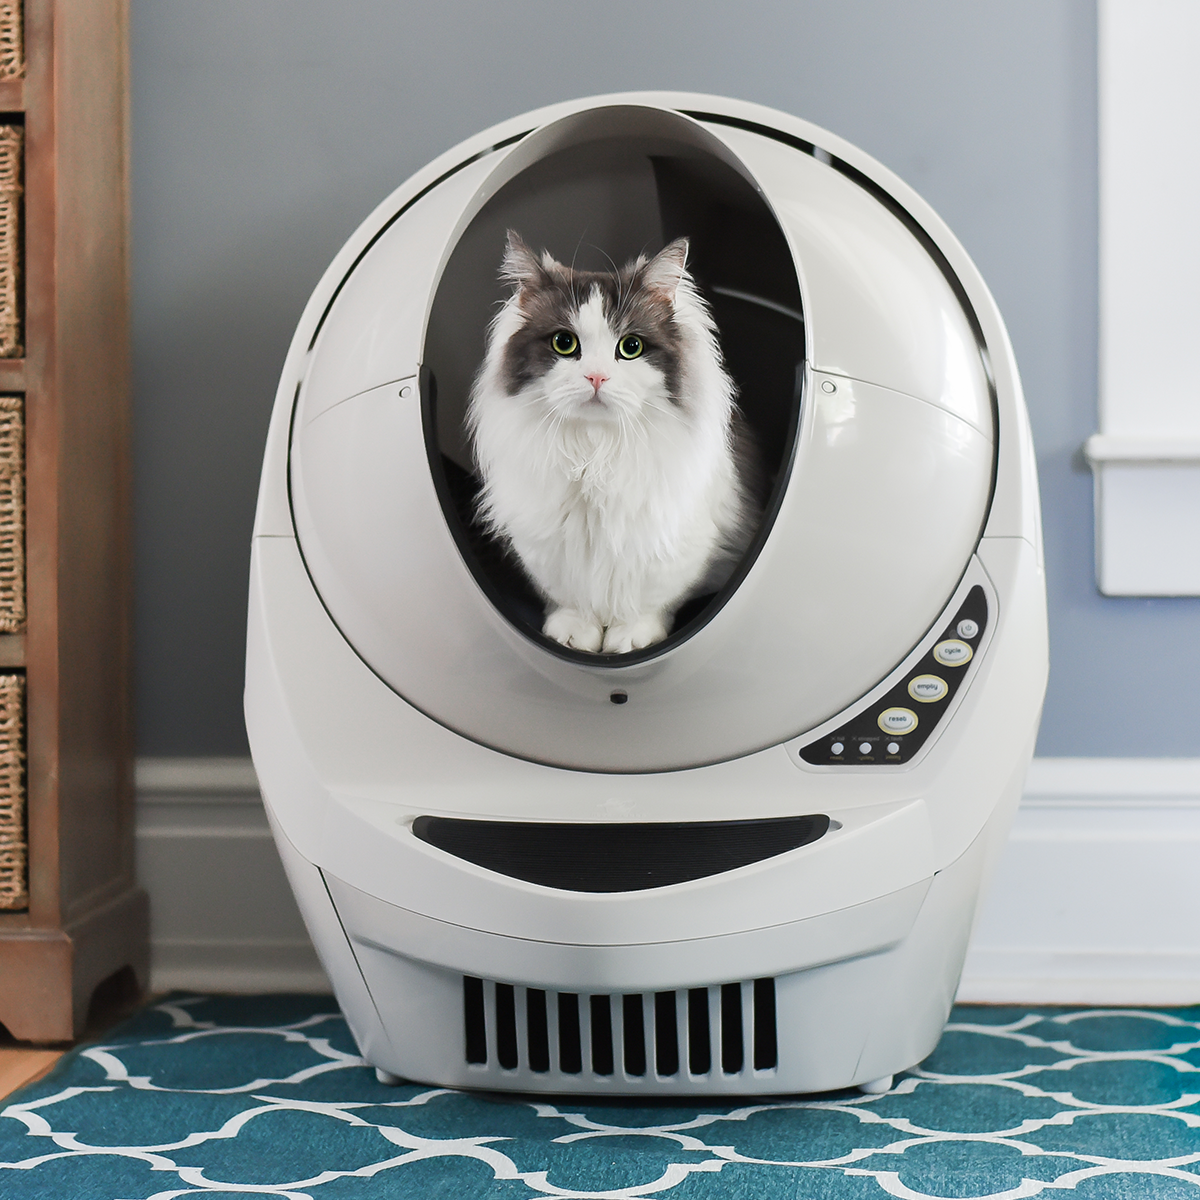 Automatic Self Cleaning Litter Box For Cats